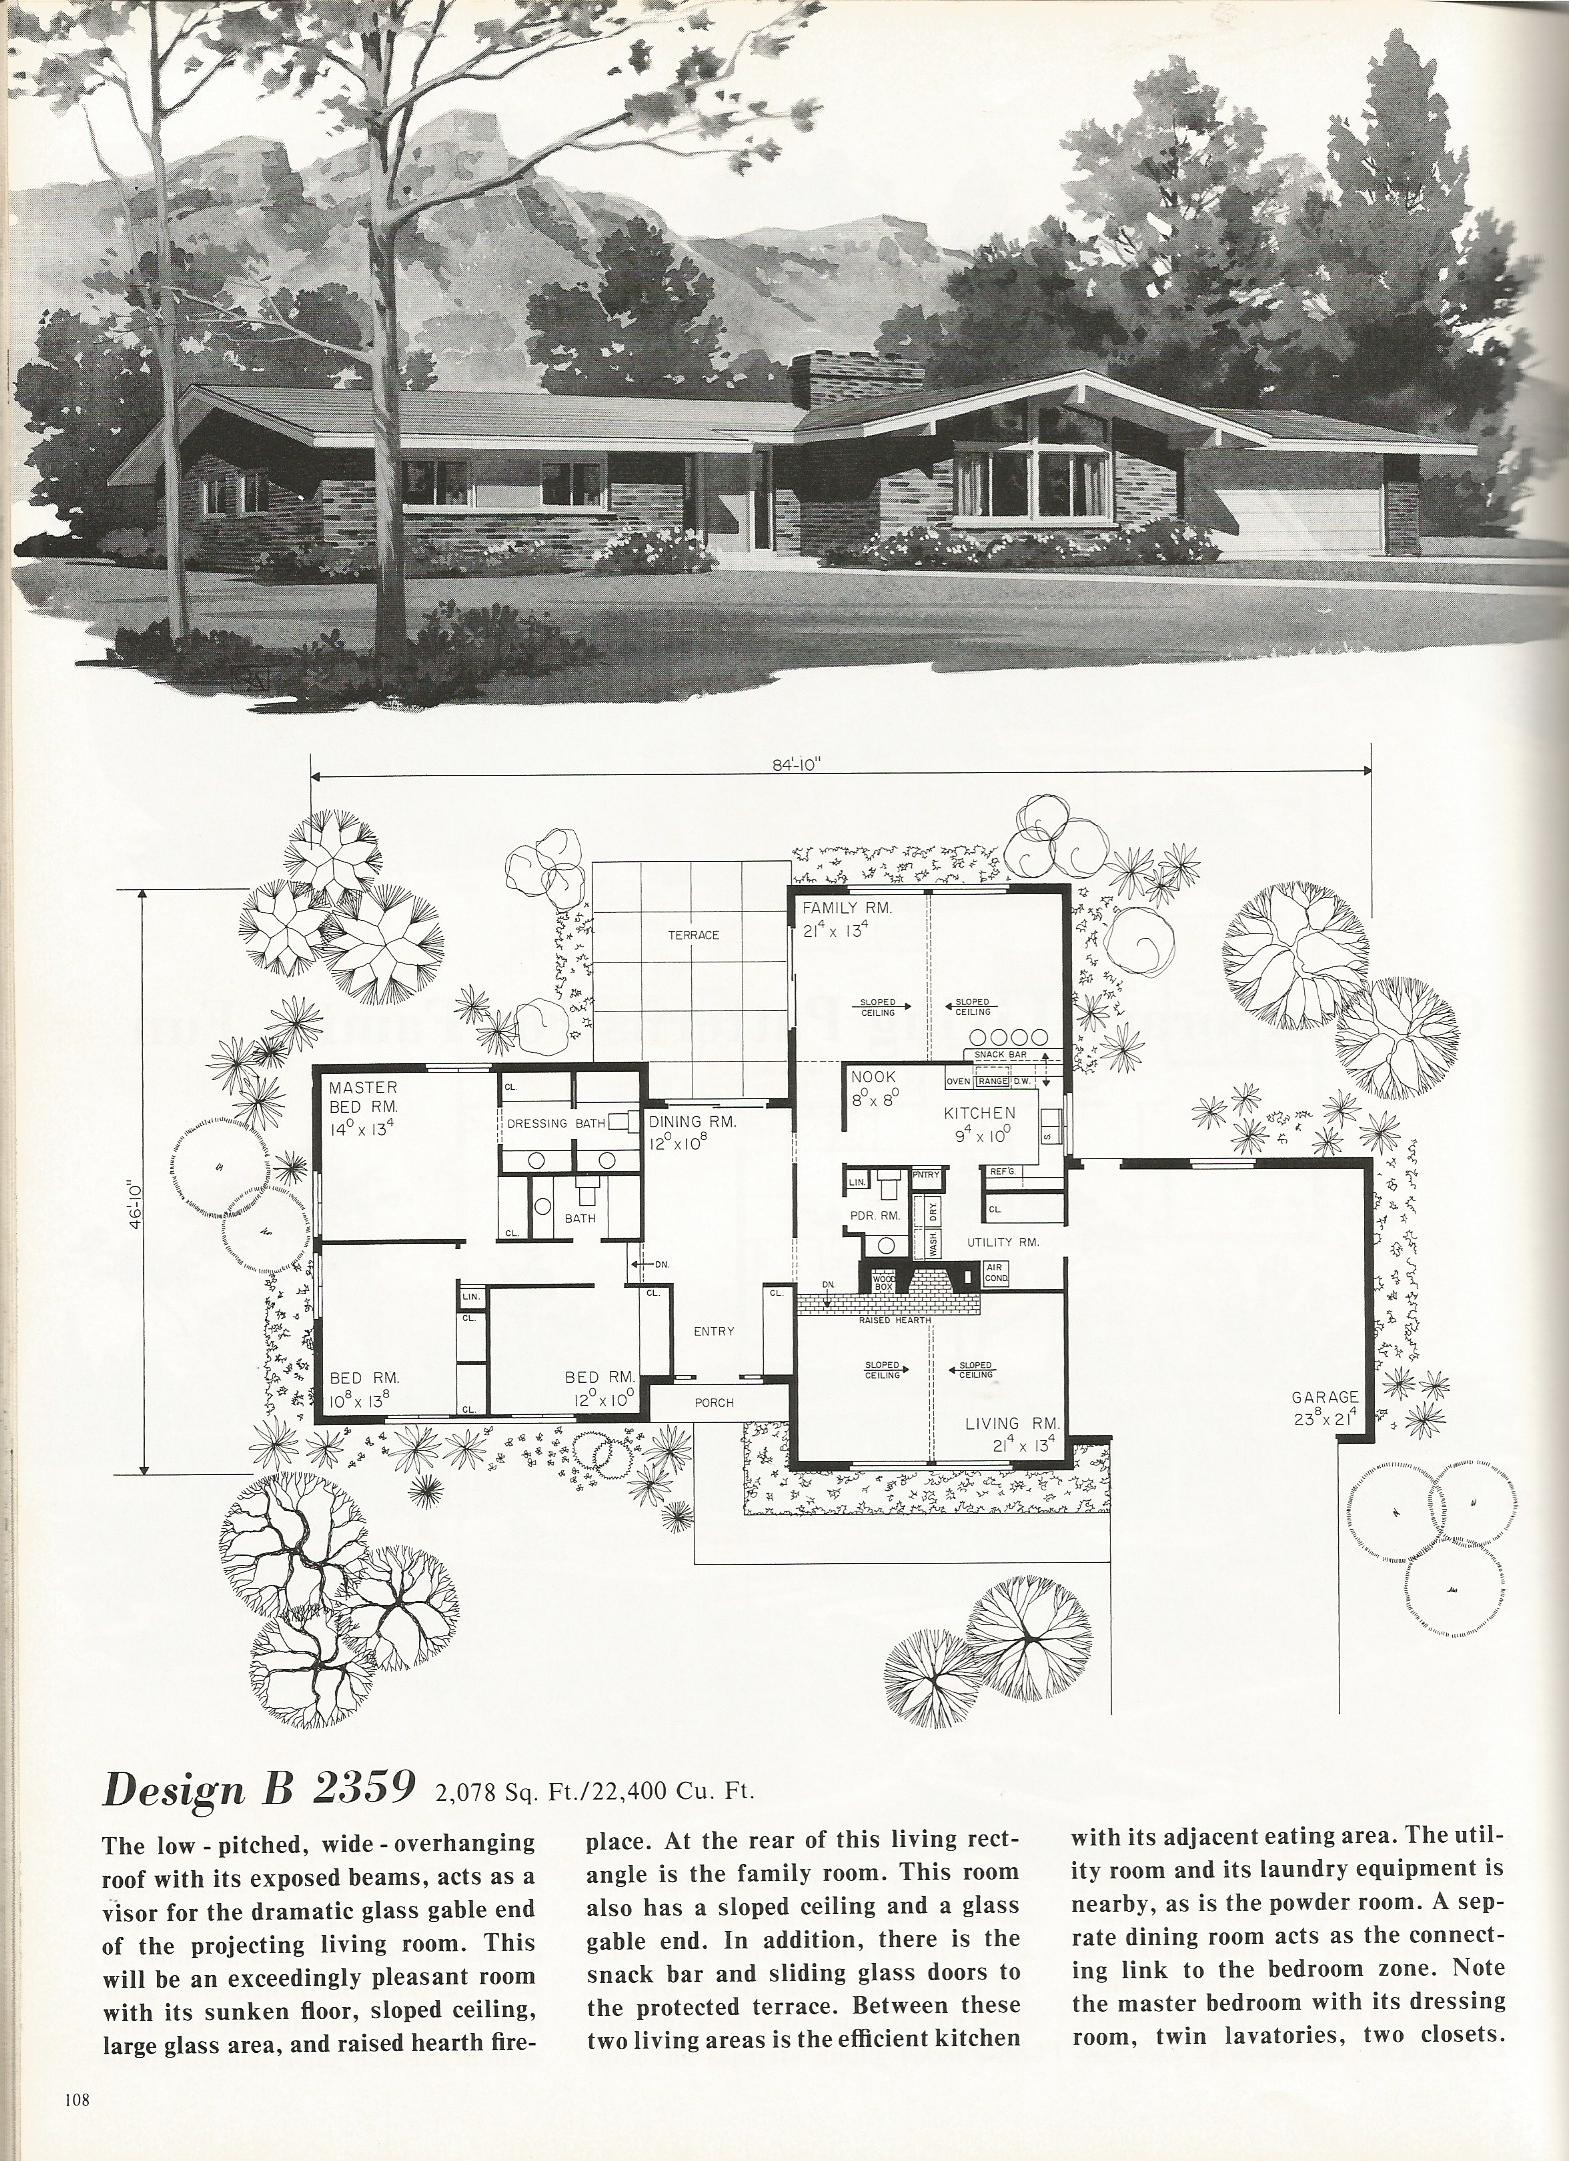 Vintage house plans 2359 antique alter ego for Retro modern house plans